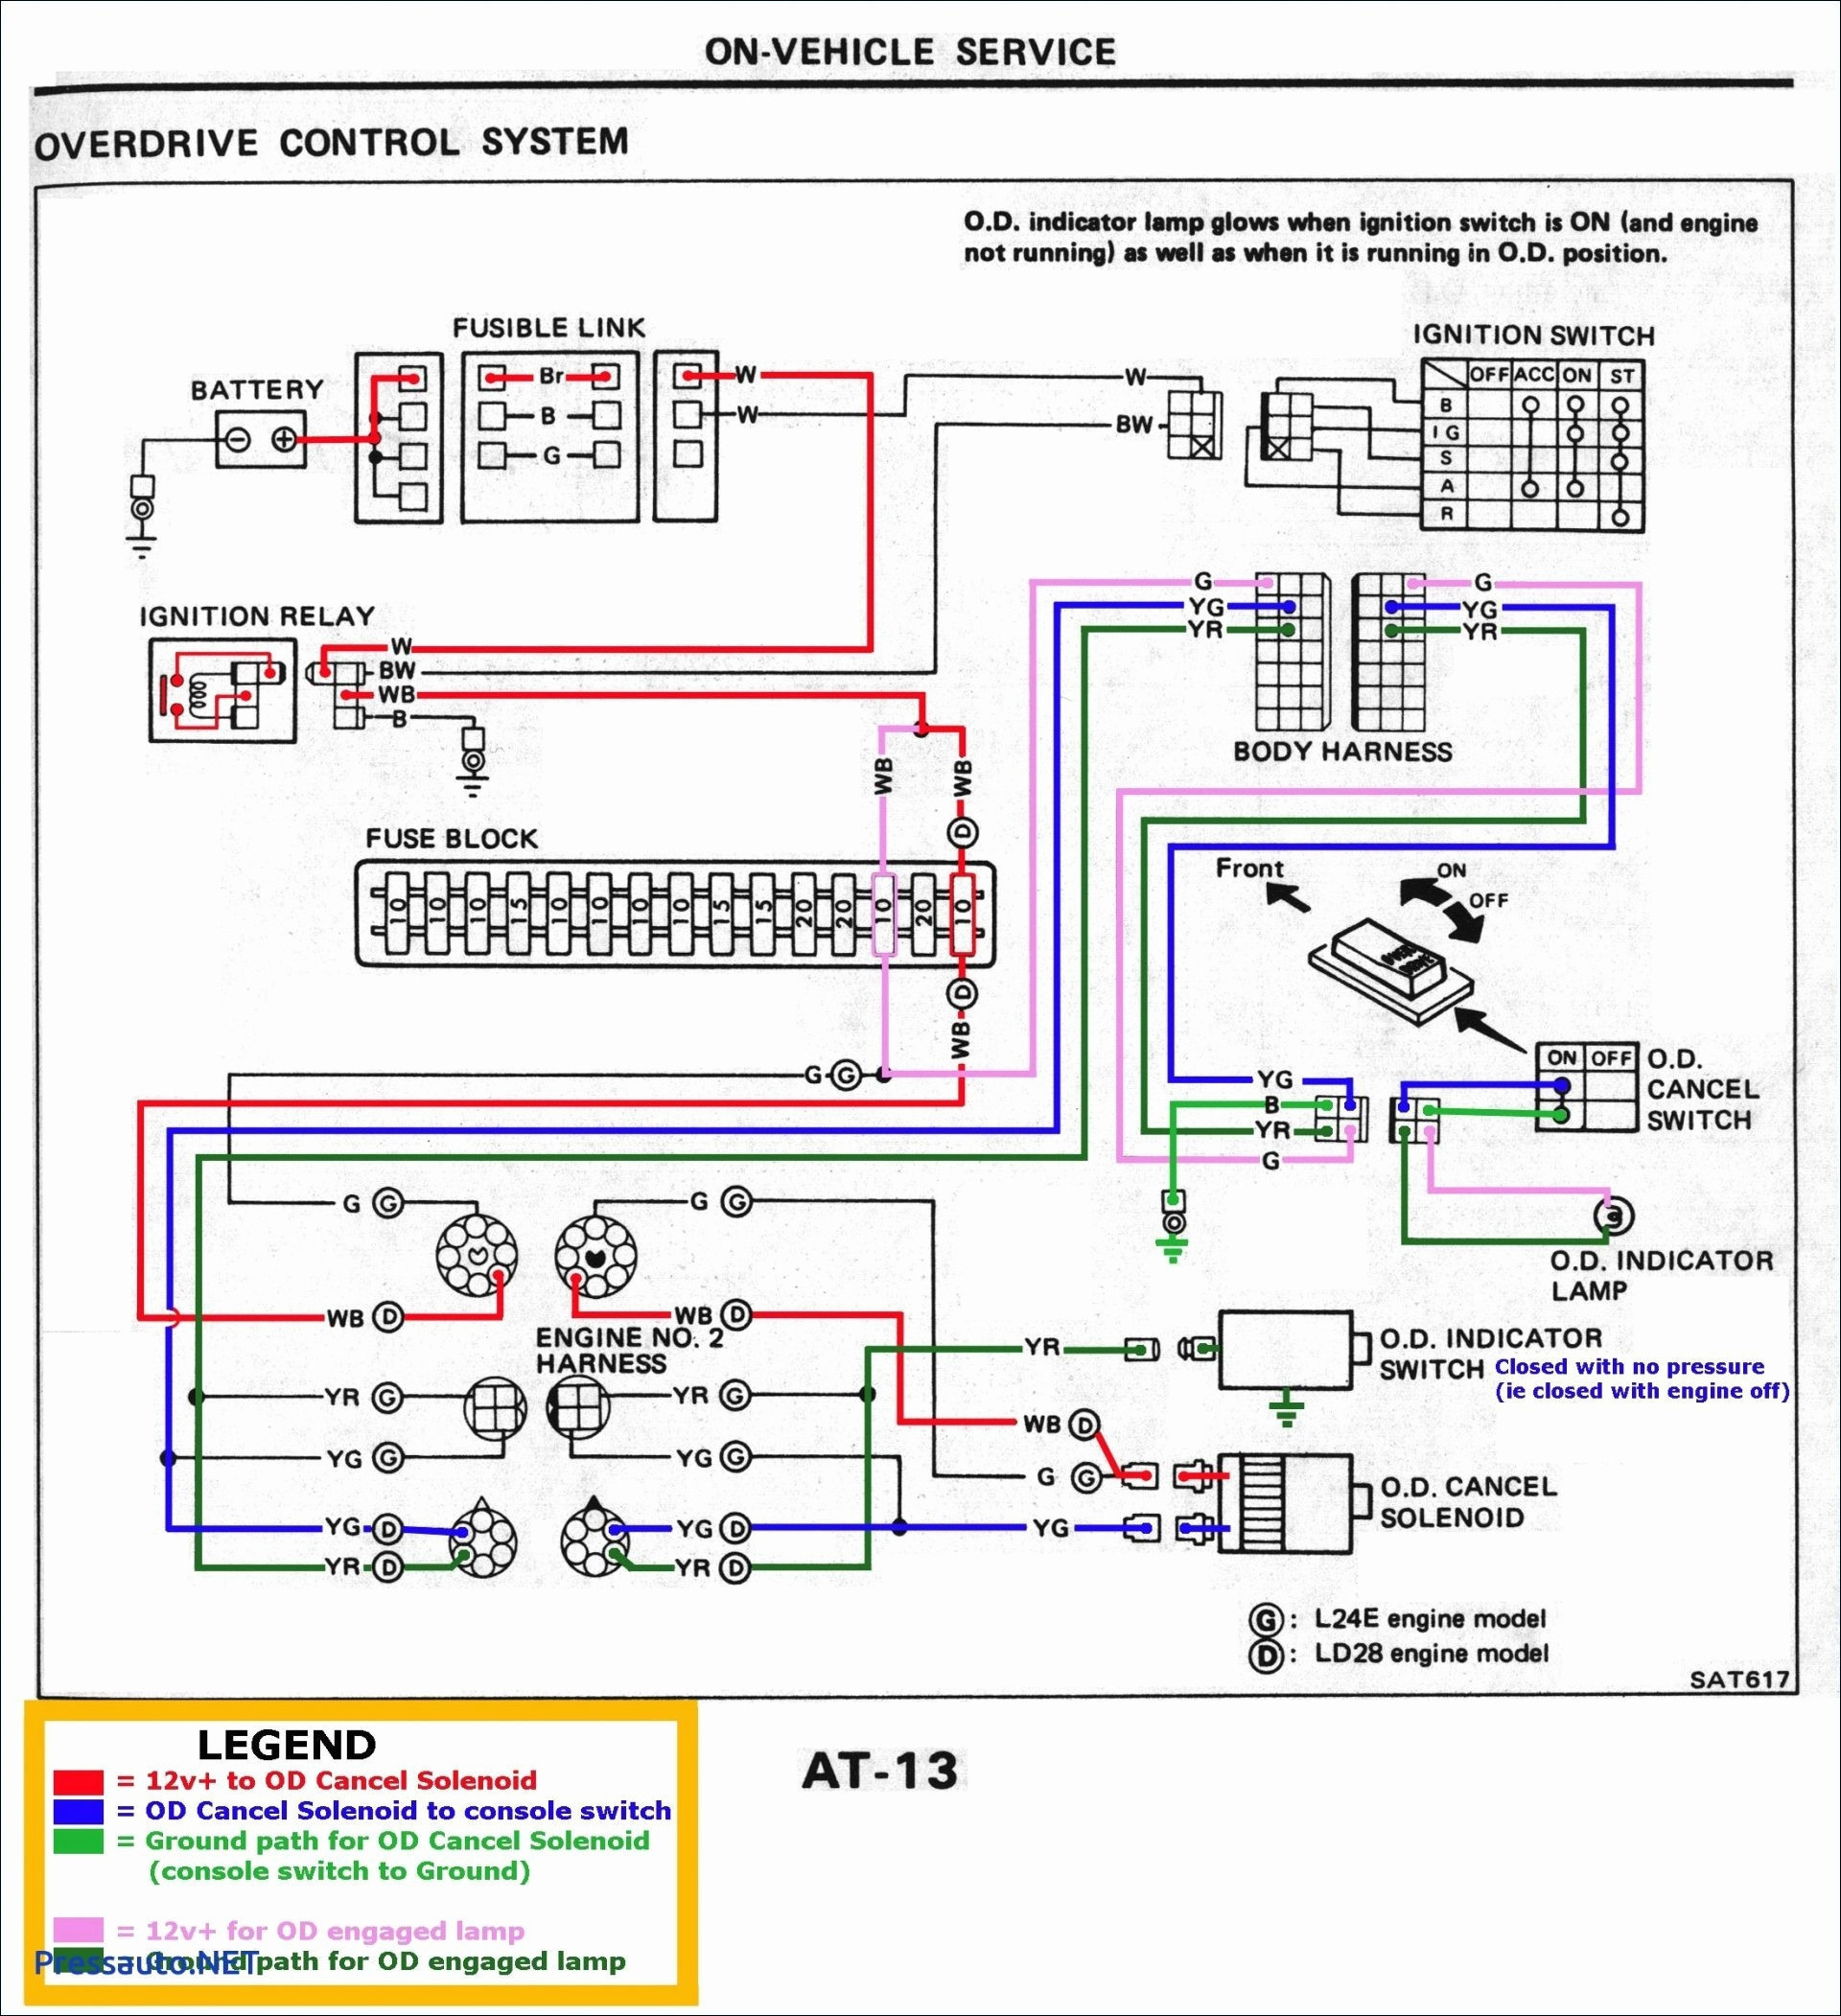 timer relay wiring diagram Collection-Wiring Diagram Timer Relay Fresh Wiring Diagram Time Delay Relay Valid Glow Relay Wiring Diagram 14-m